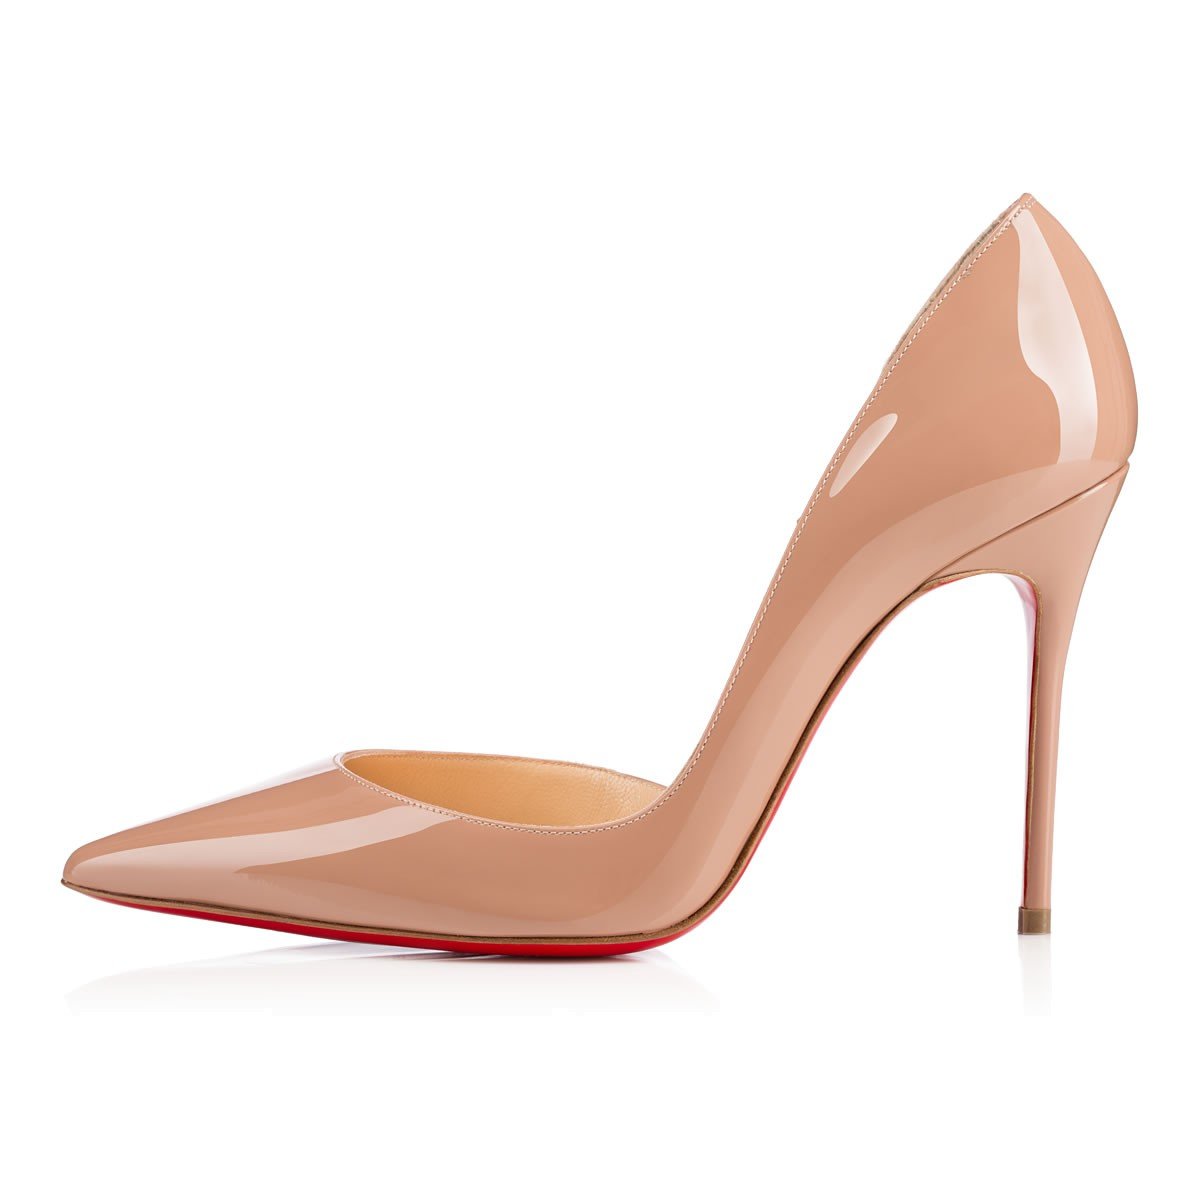 7737a9eb43f Iriza 100 Nude Patent Leather - Women Shoes - Christian Louboutin